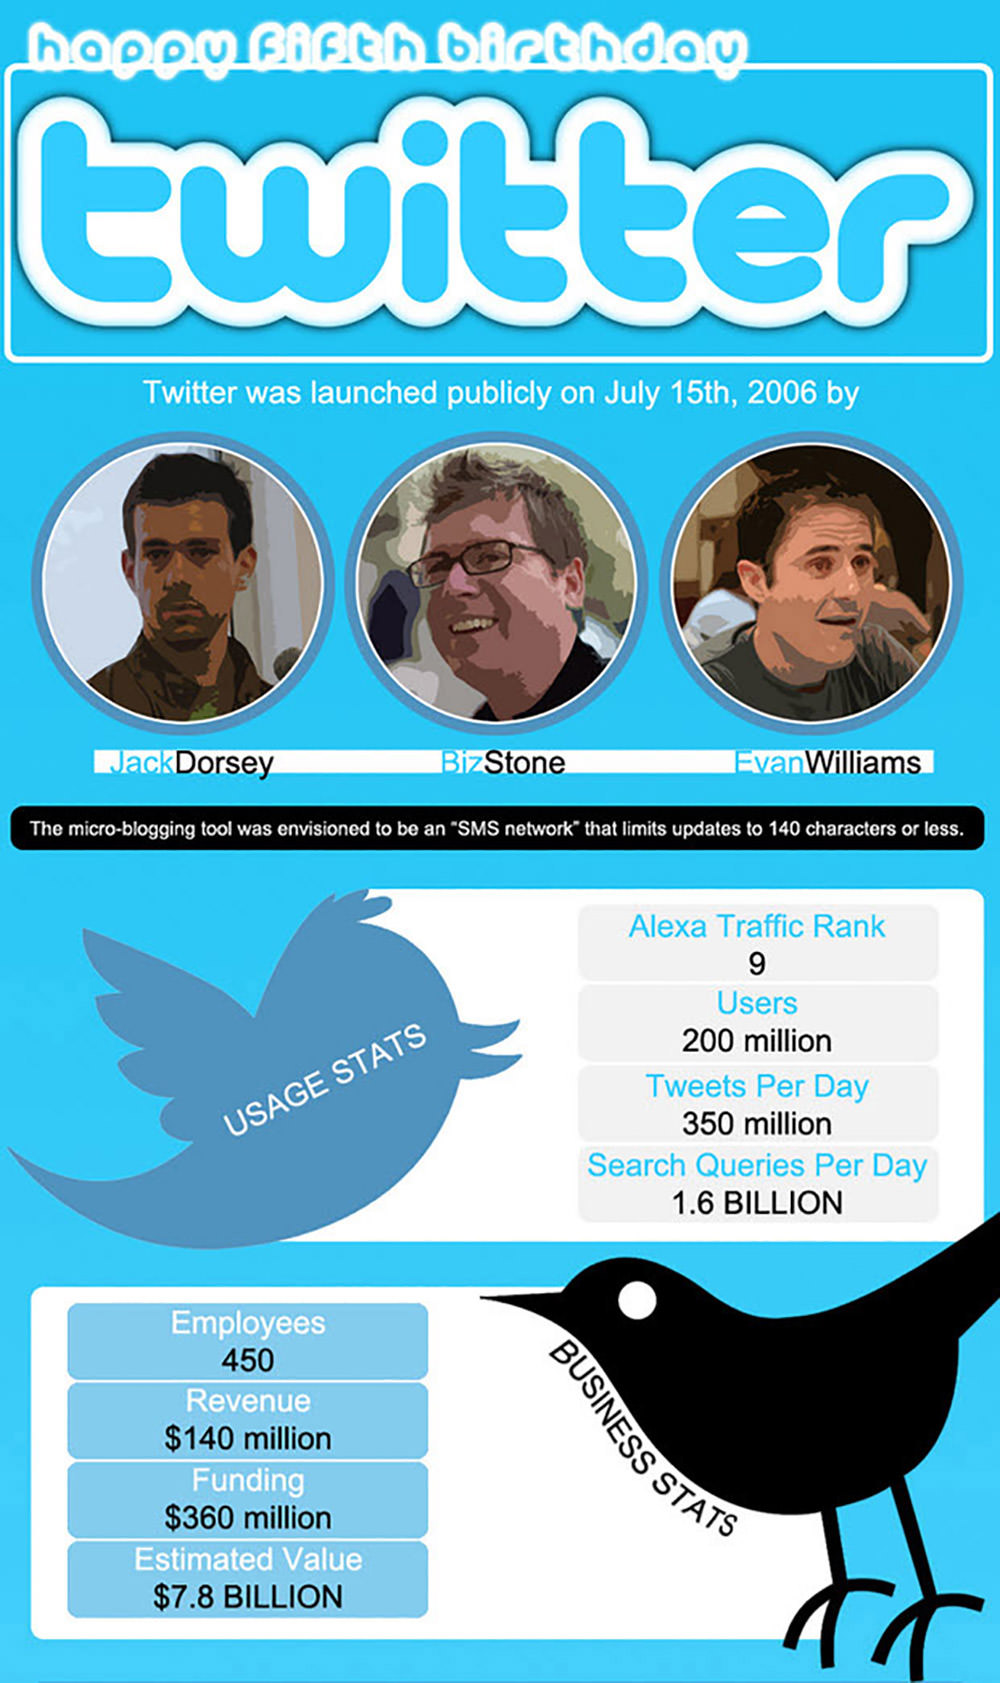 11 New Twitter Facts, Figures and Growth Statistics